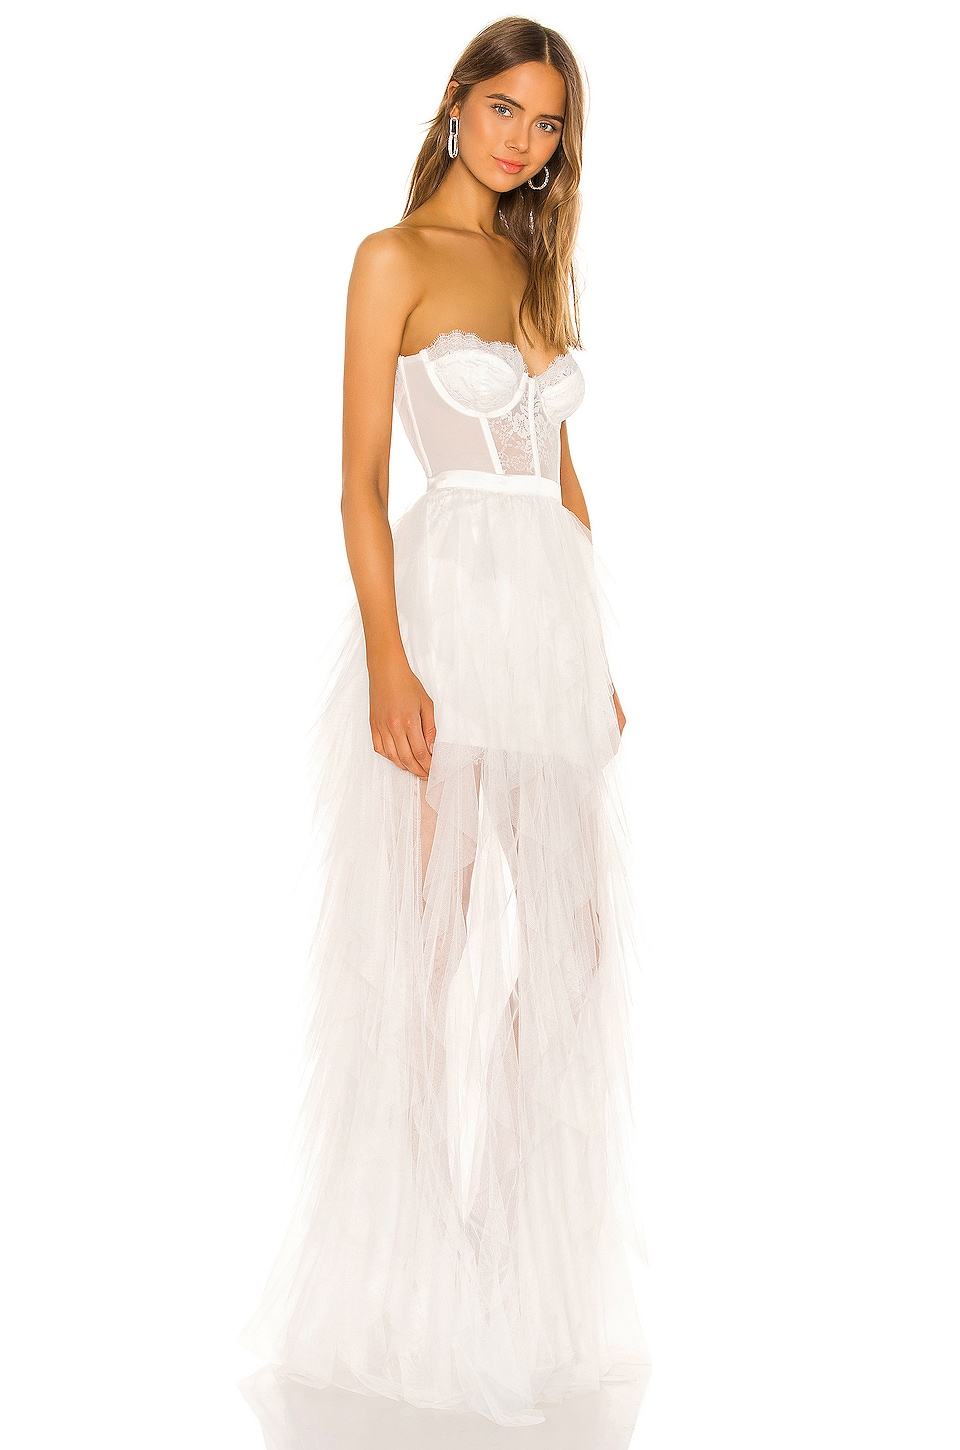 X REVOLVE Bustier Gown, view 2, click to view large image.